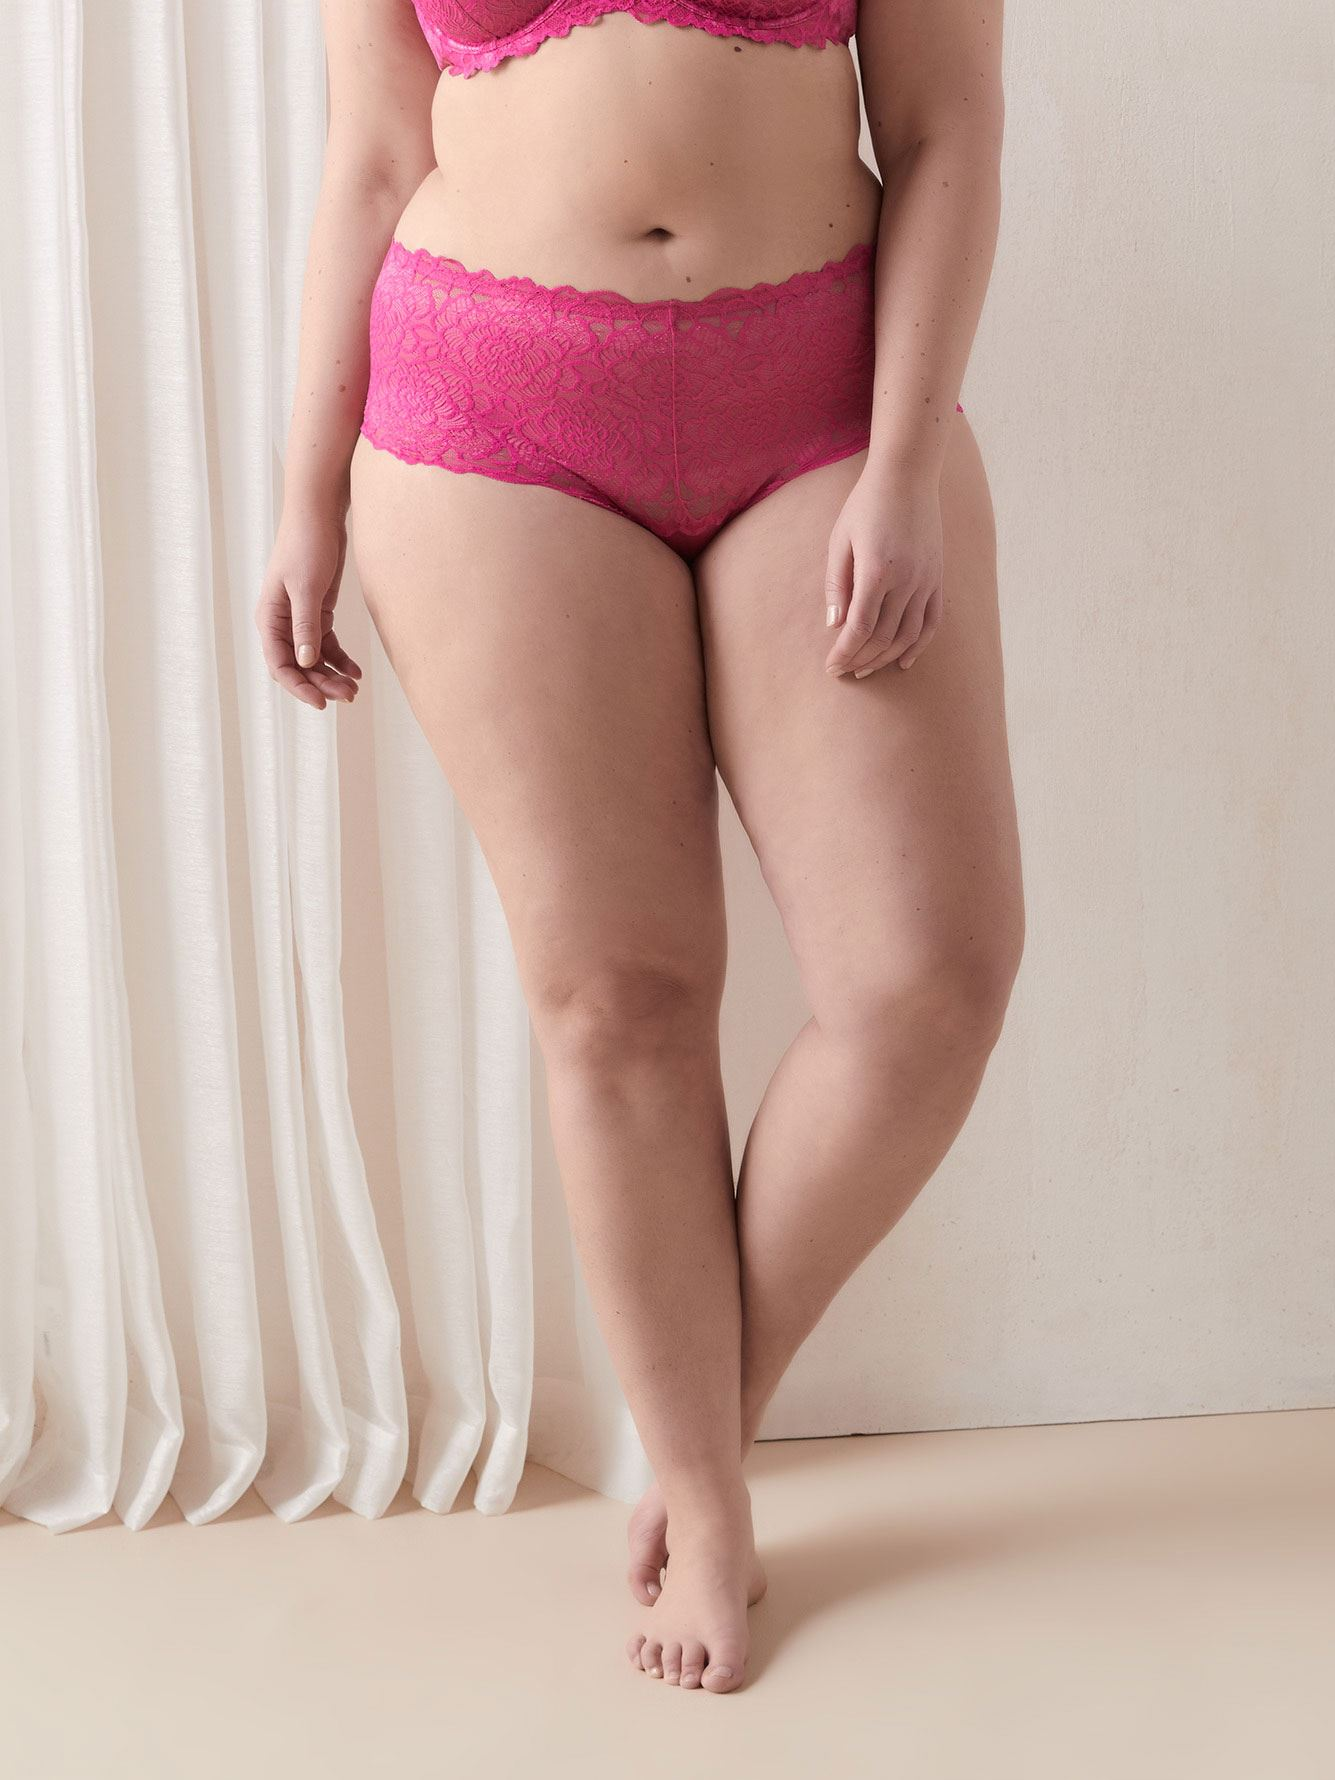 Women/'s La Marquise Comforts Lace Maxi Briefs 3 Pack full coverage Underwear